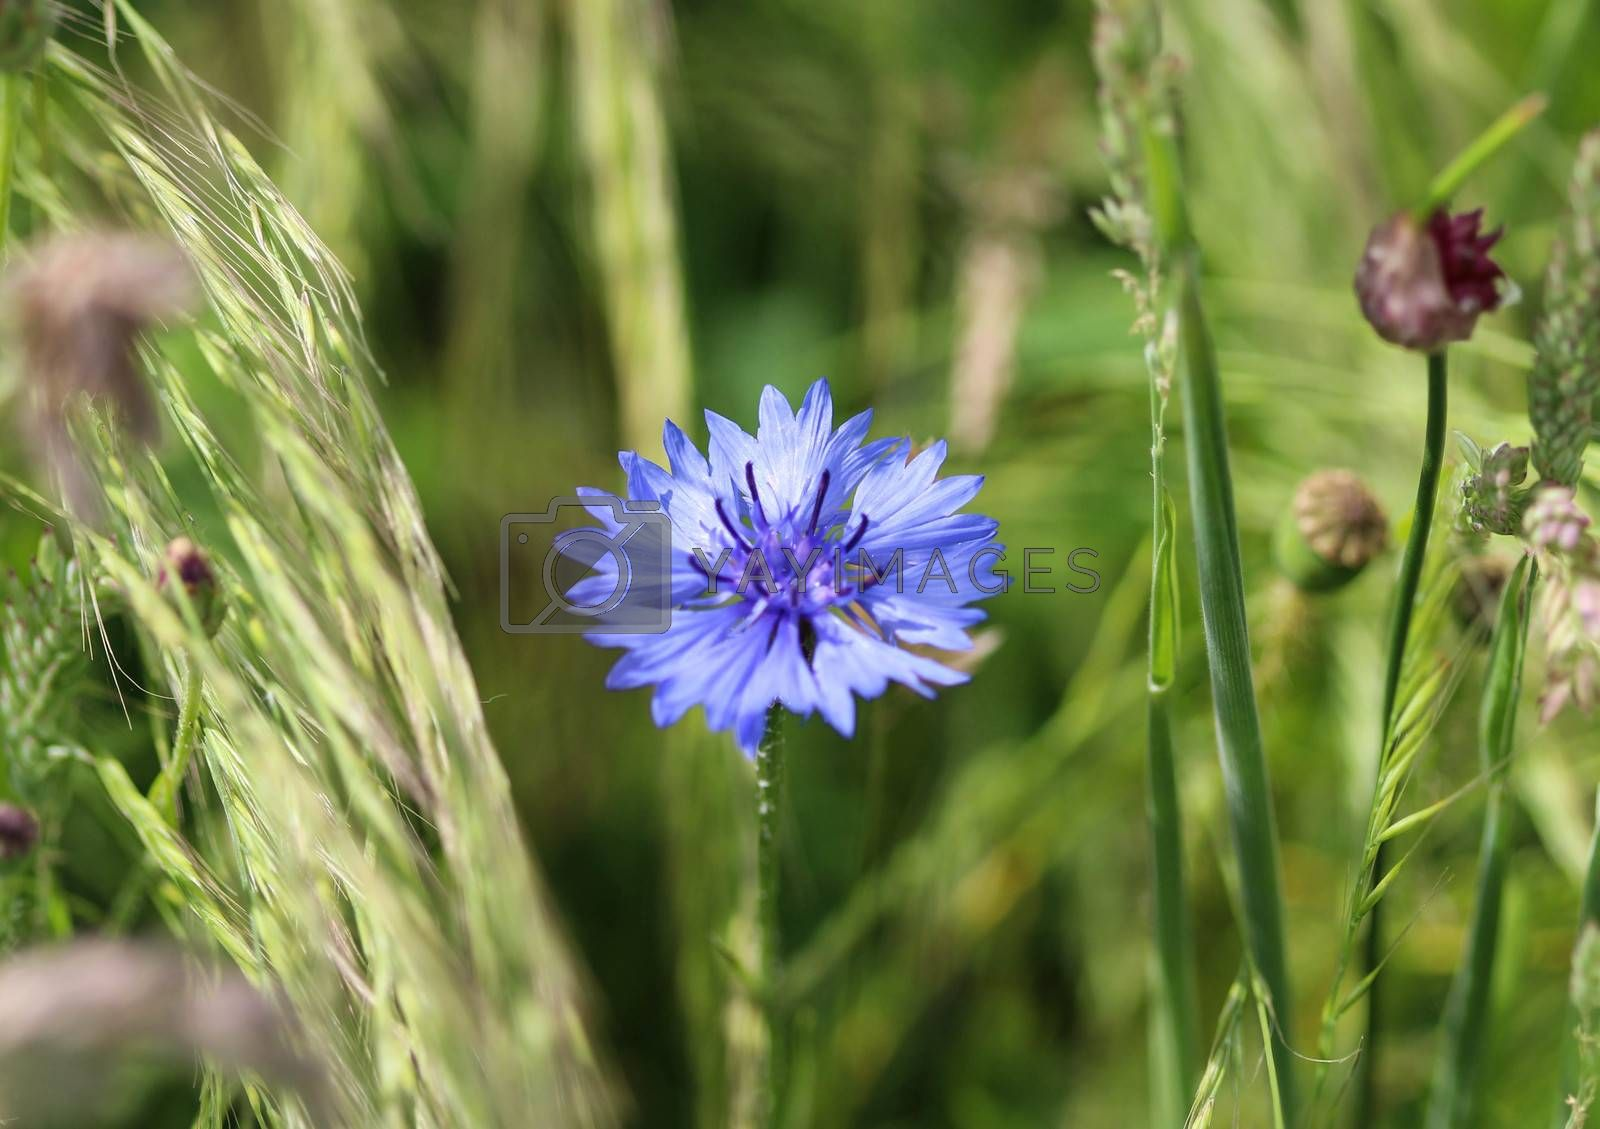 Royalty free image of Centaurea cyanus, commonly known as cornflower or bachelors button by michaelmeijer